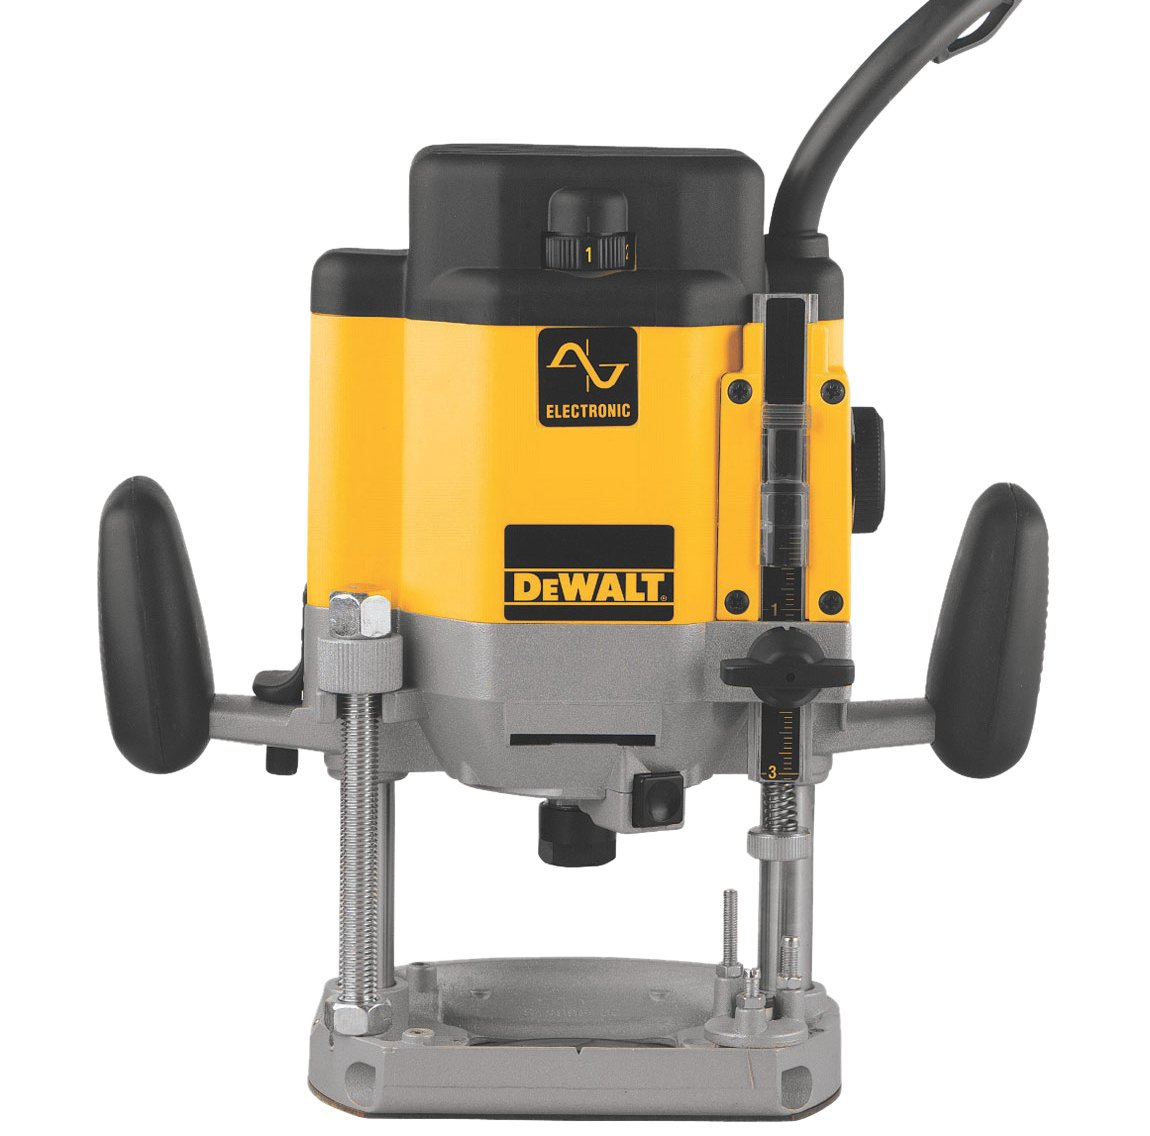 DEWALT Router, Plunge Base, Variable Speed, 3-HP DW625